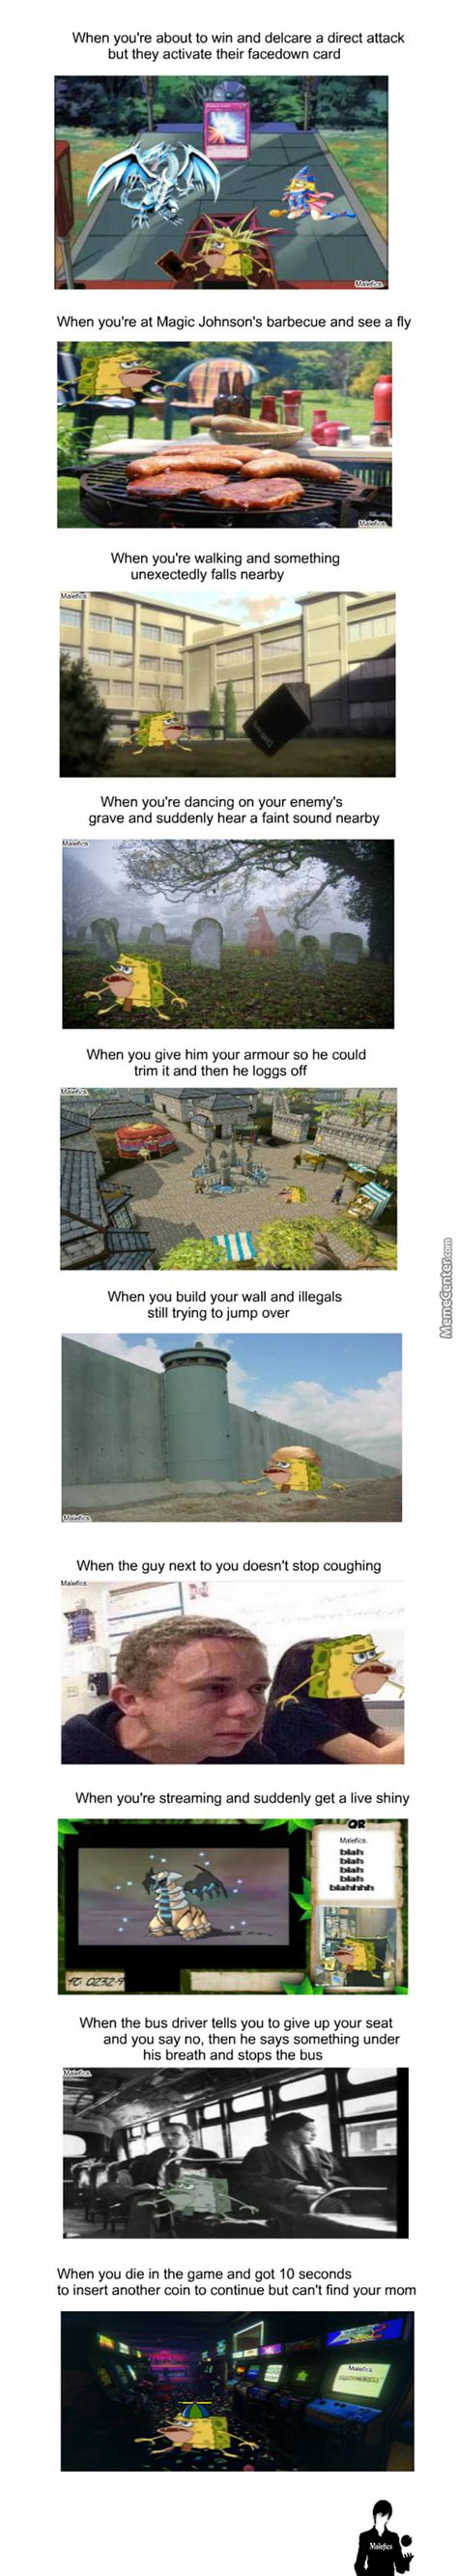 Spongegar Memes - spongegar memes best collection of funny spongegar pictures